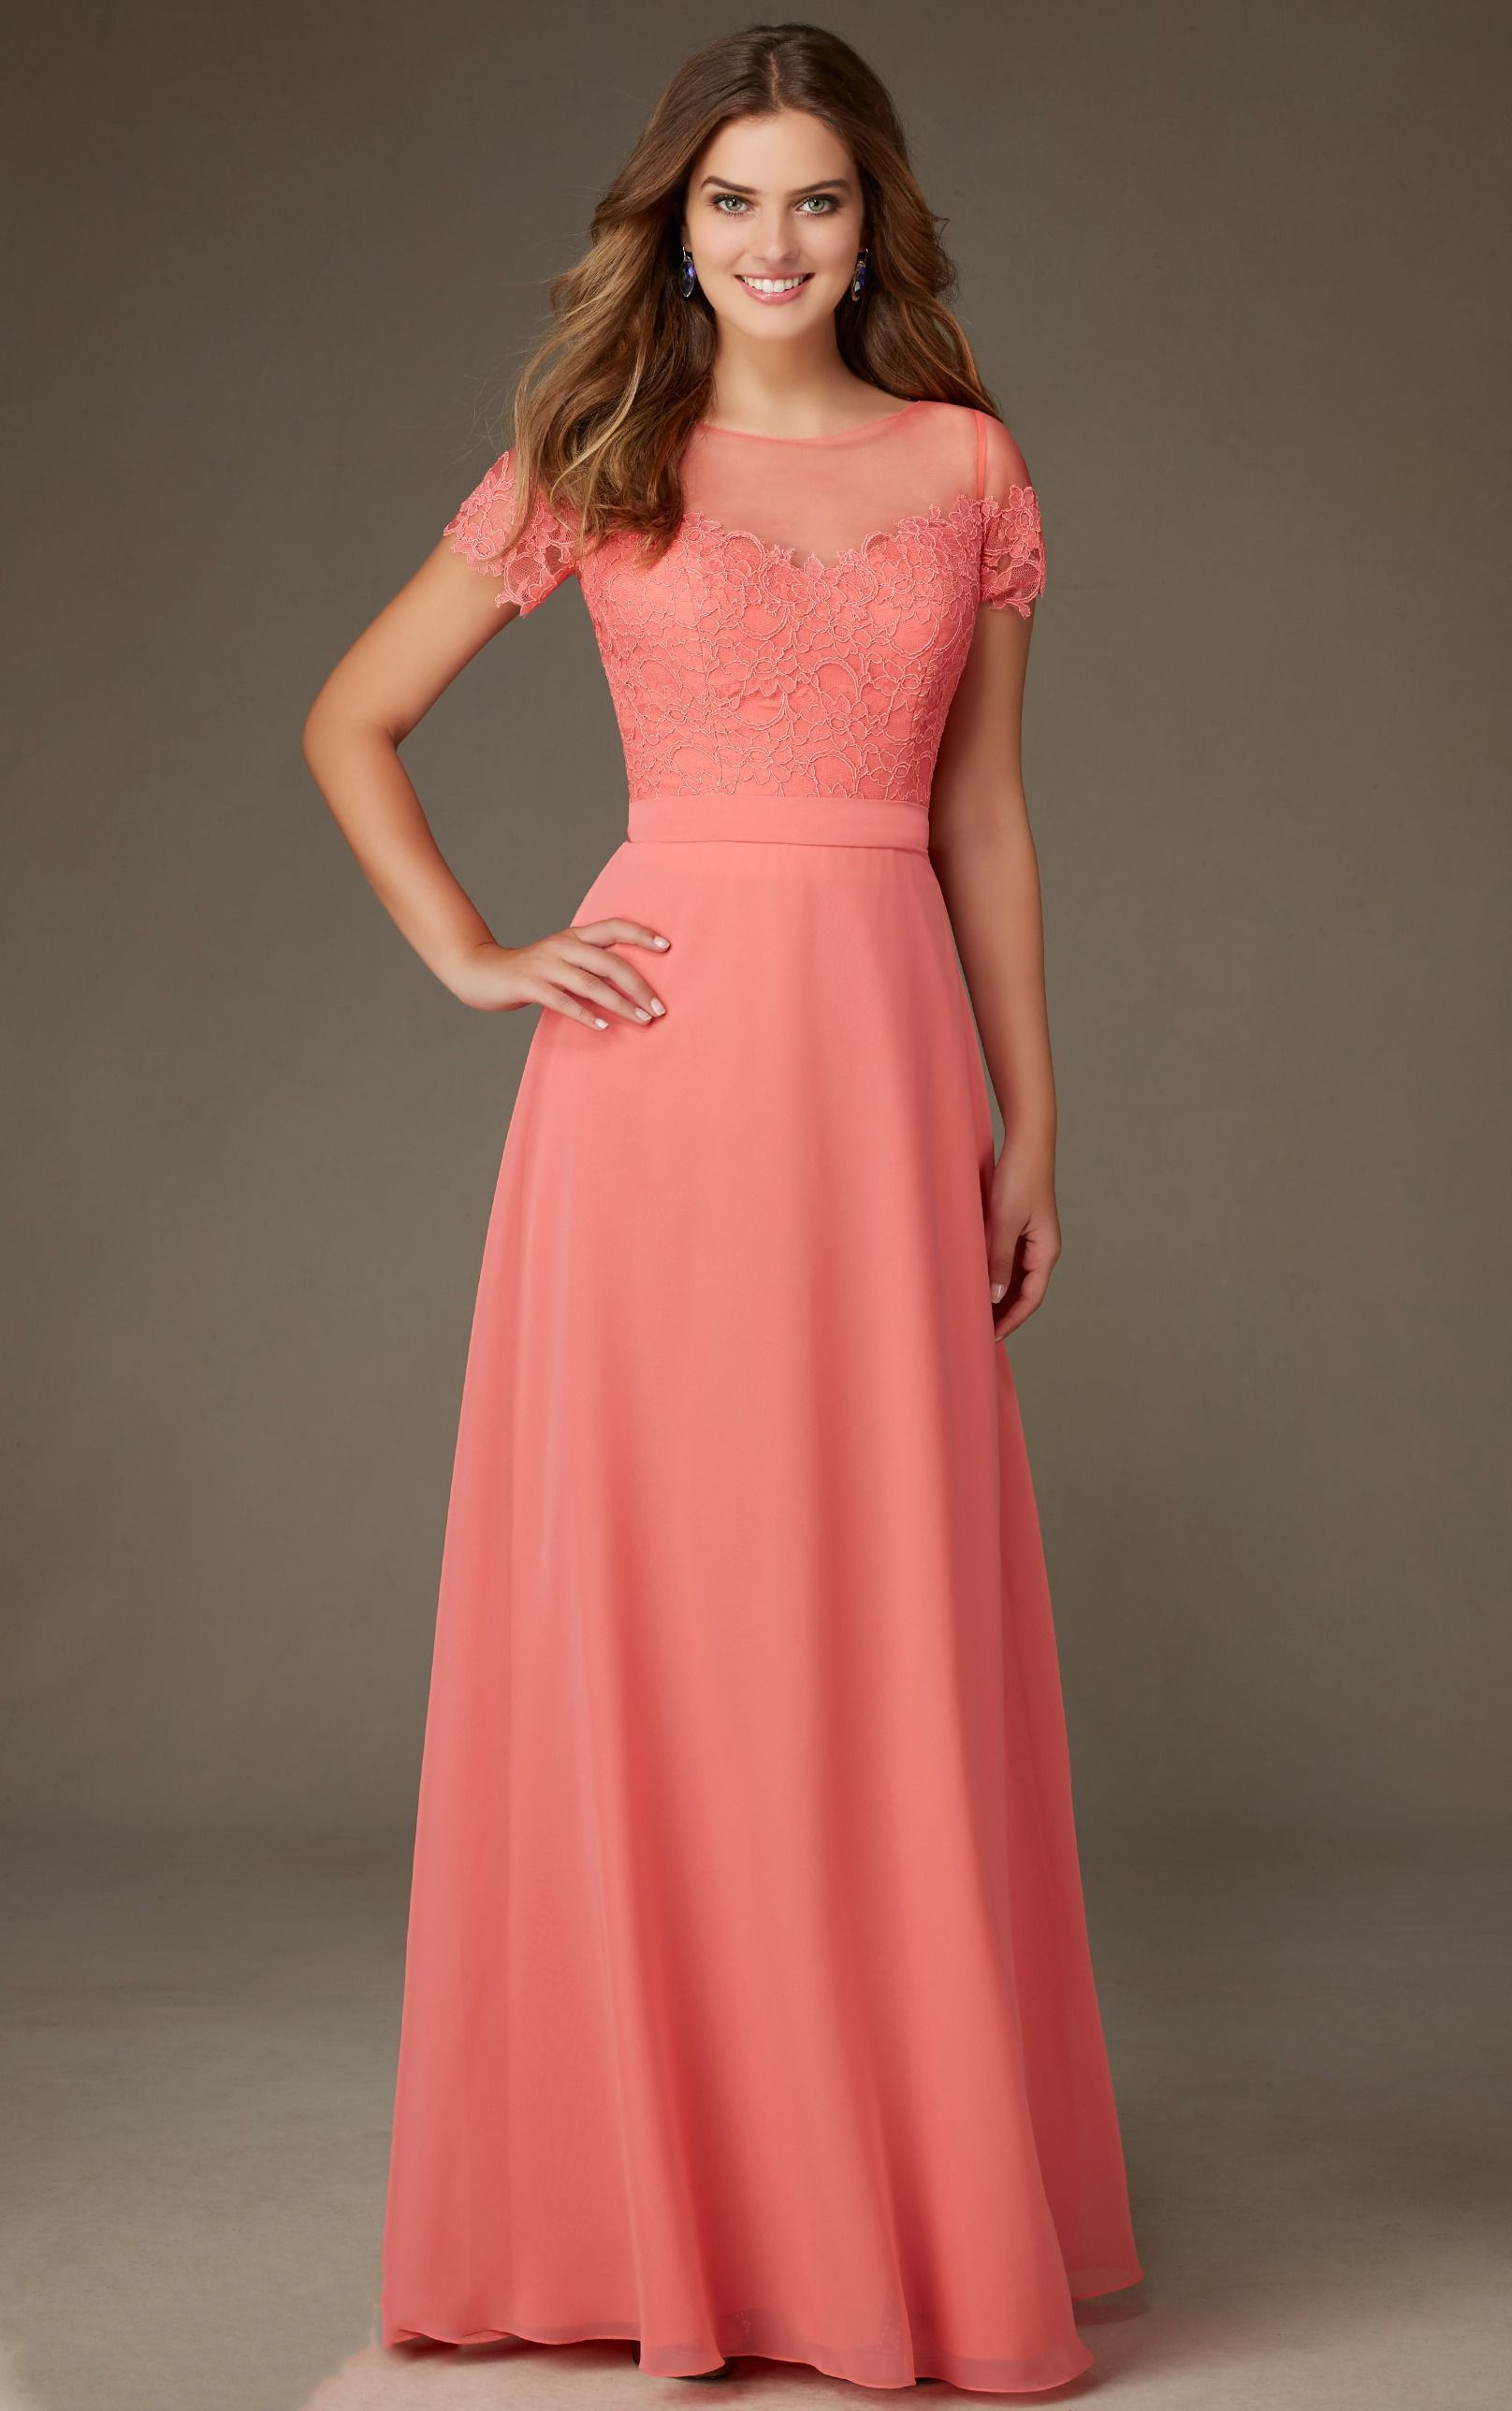 Coral Lace Bodice Short Sleeved Long A